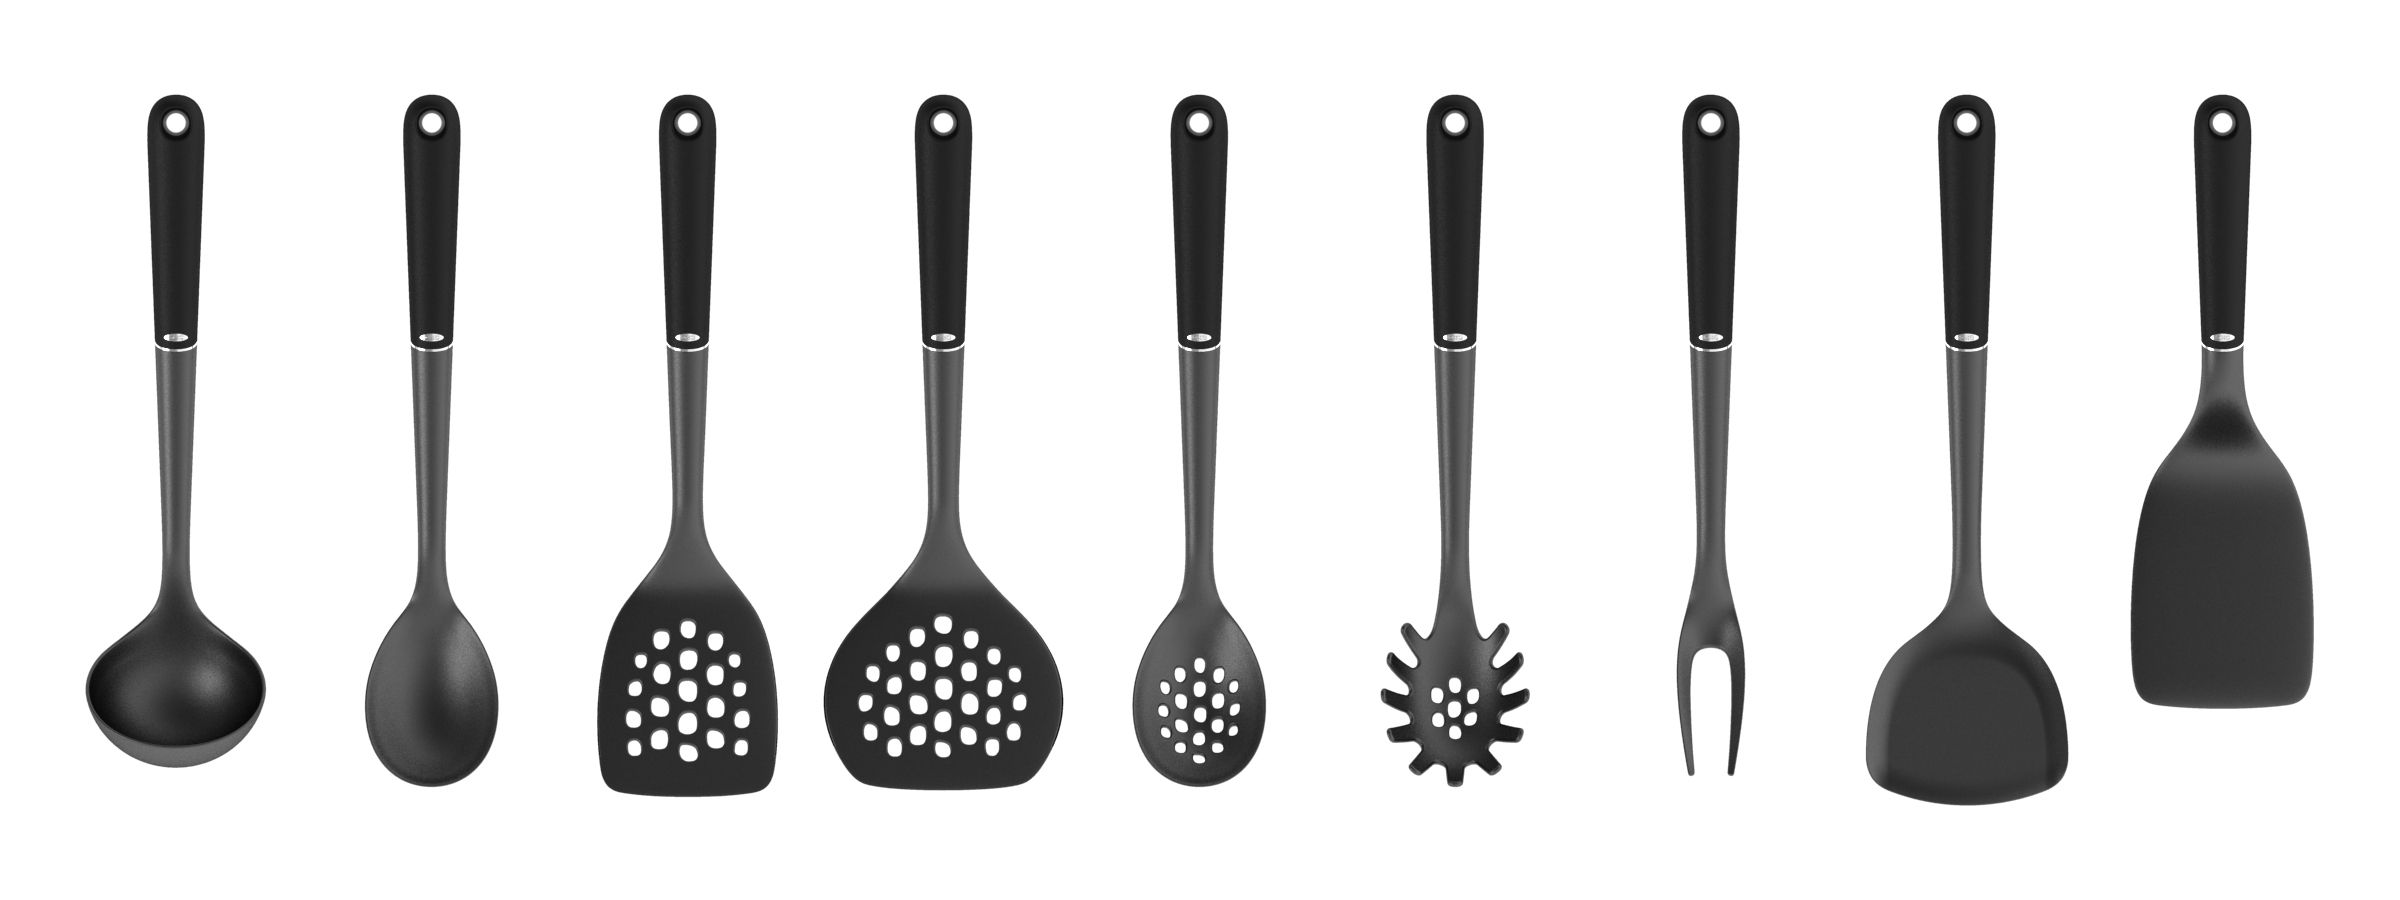 over the last decade the oxo line of utensils has become an  - over the last decade the oxo line of utensils has become an essential ofthe